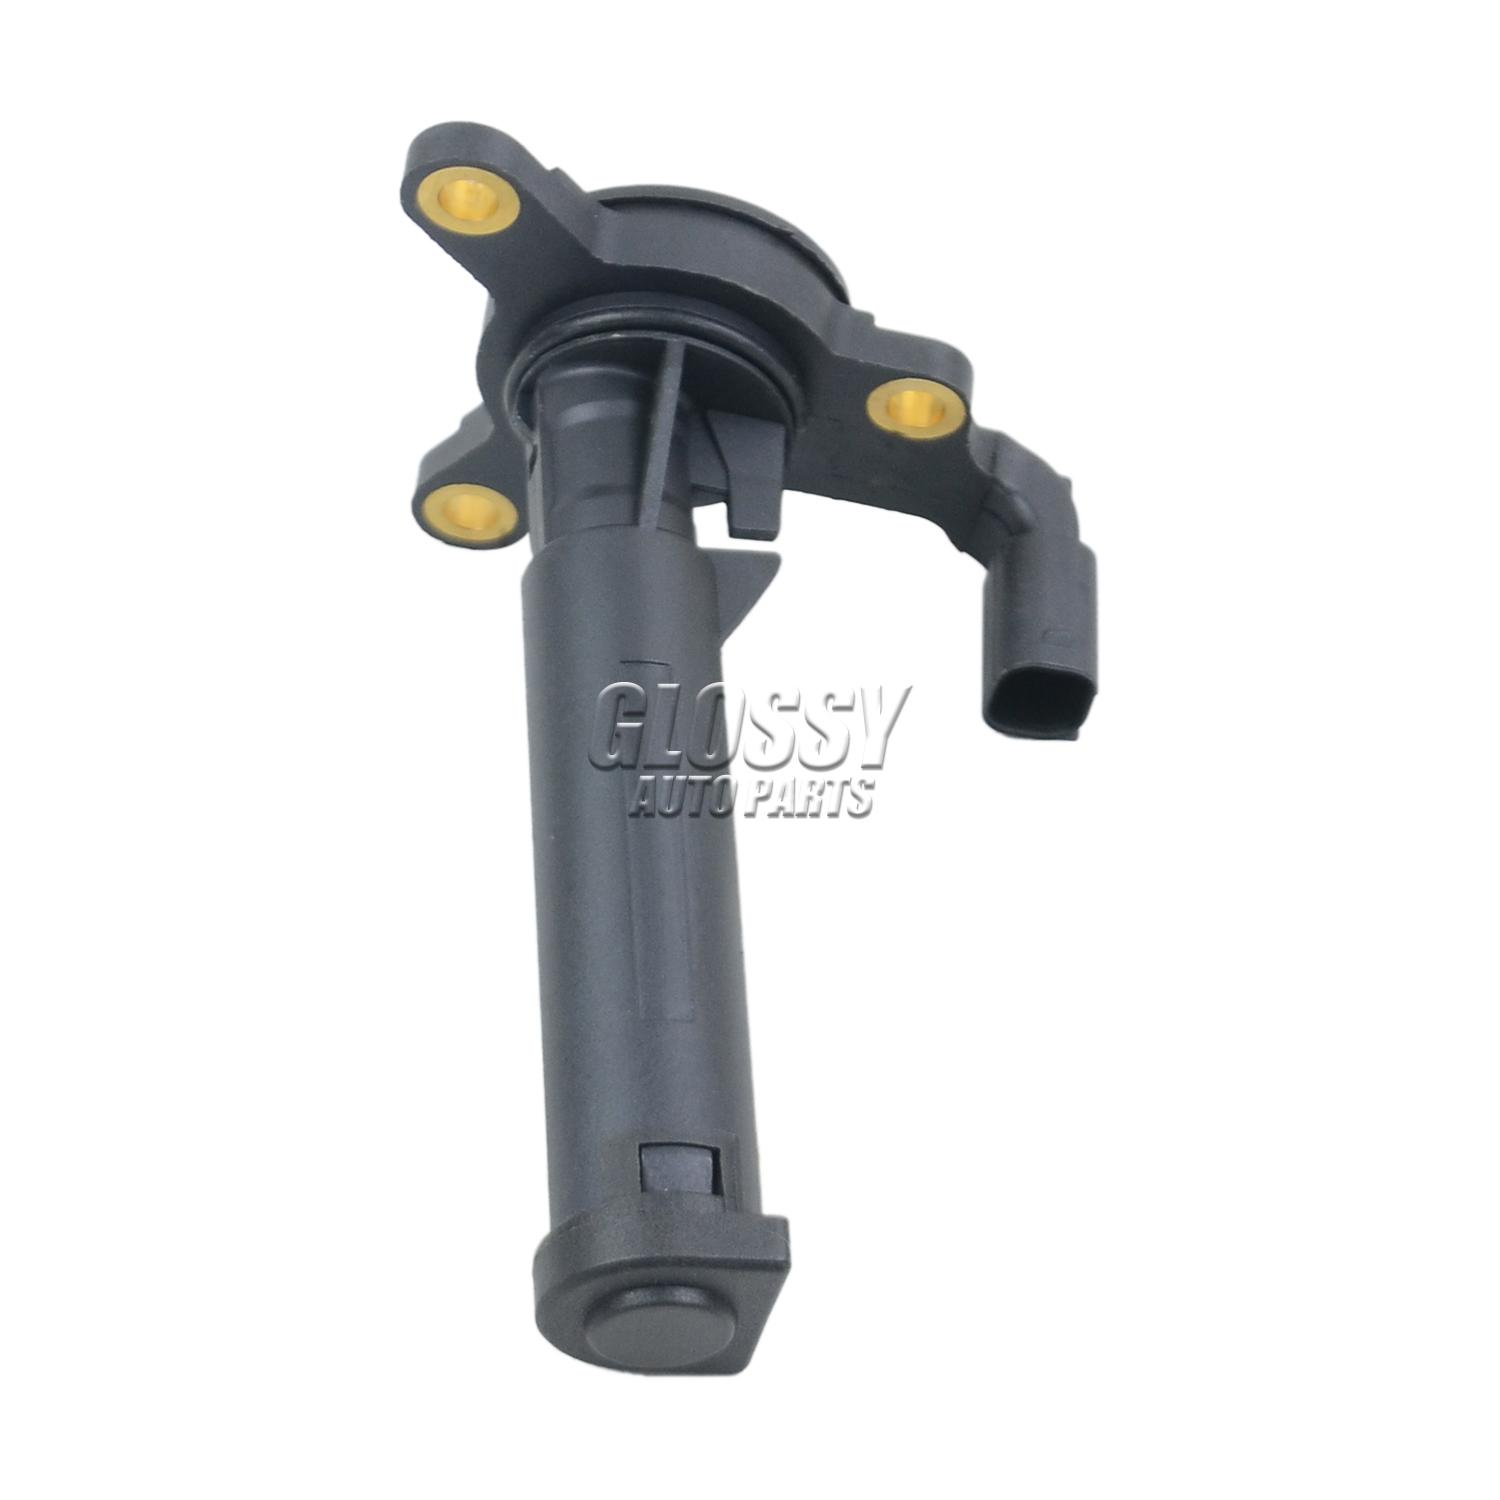 AP02 New Oil Level Sensor 0041537428 for MERCEDES BENZ W202 W203 W204 CL203 S202 05117544AA 05189422AA 000 905 03 01